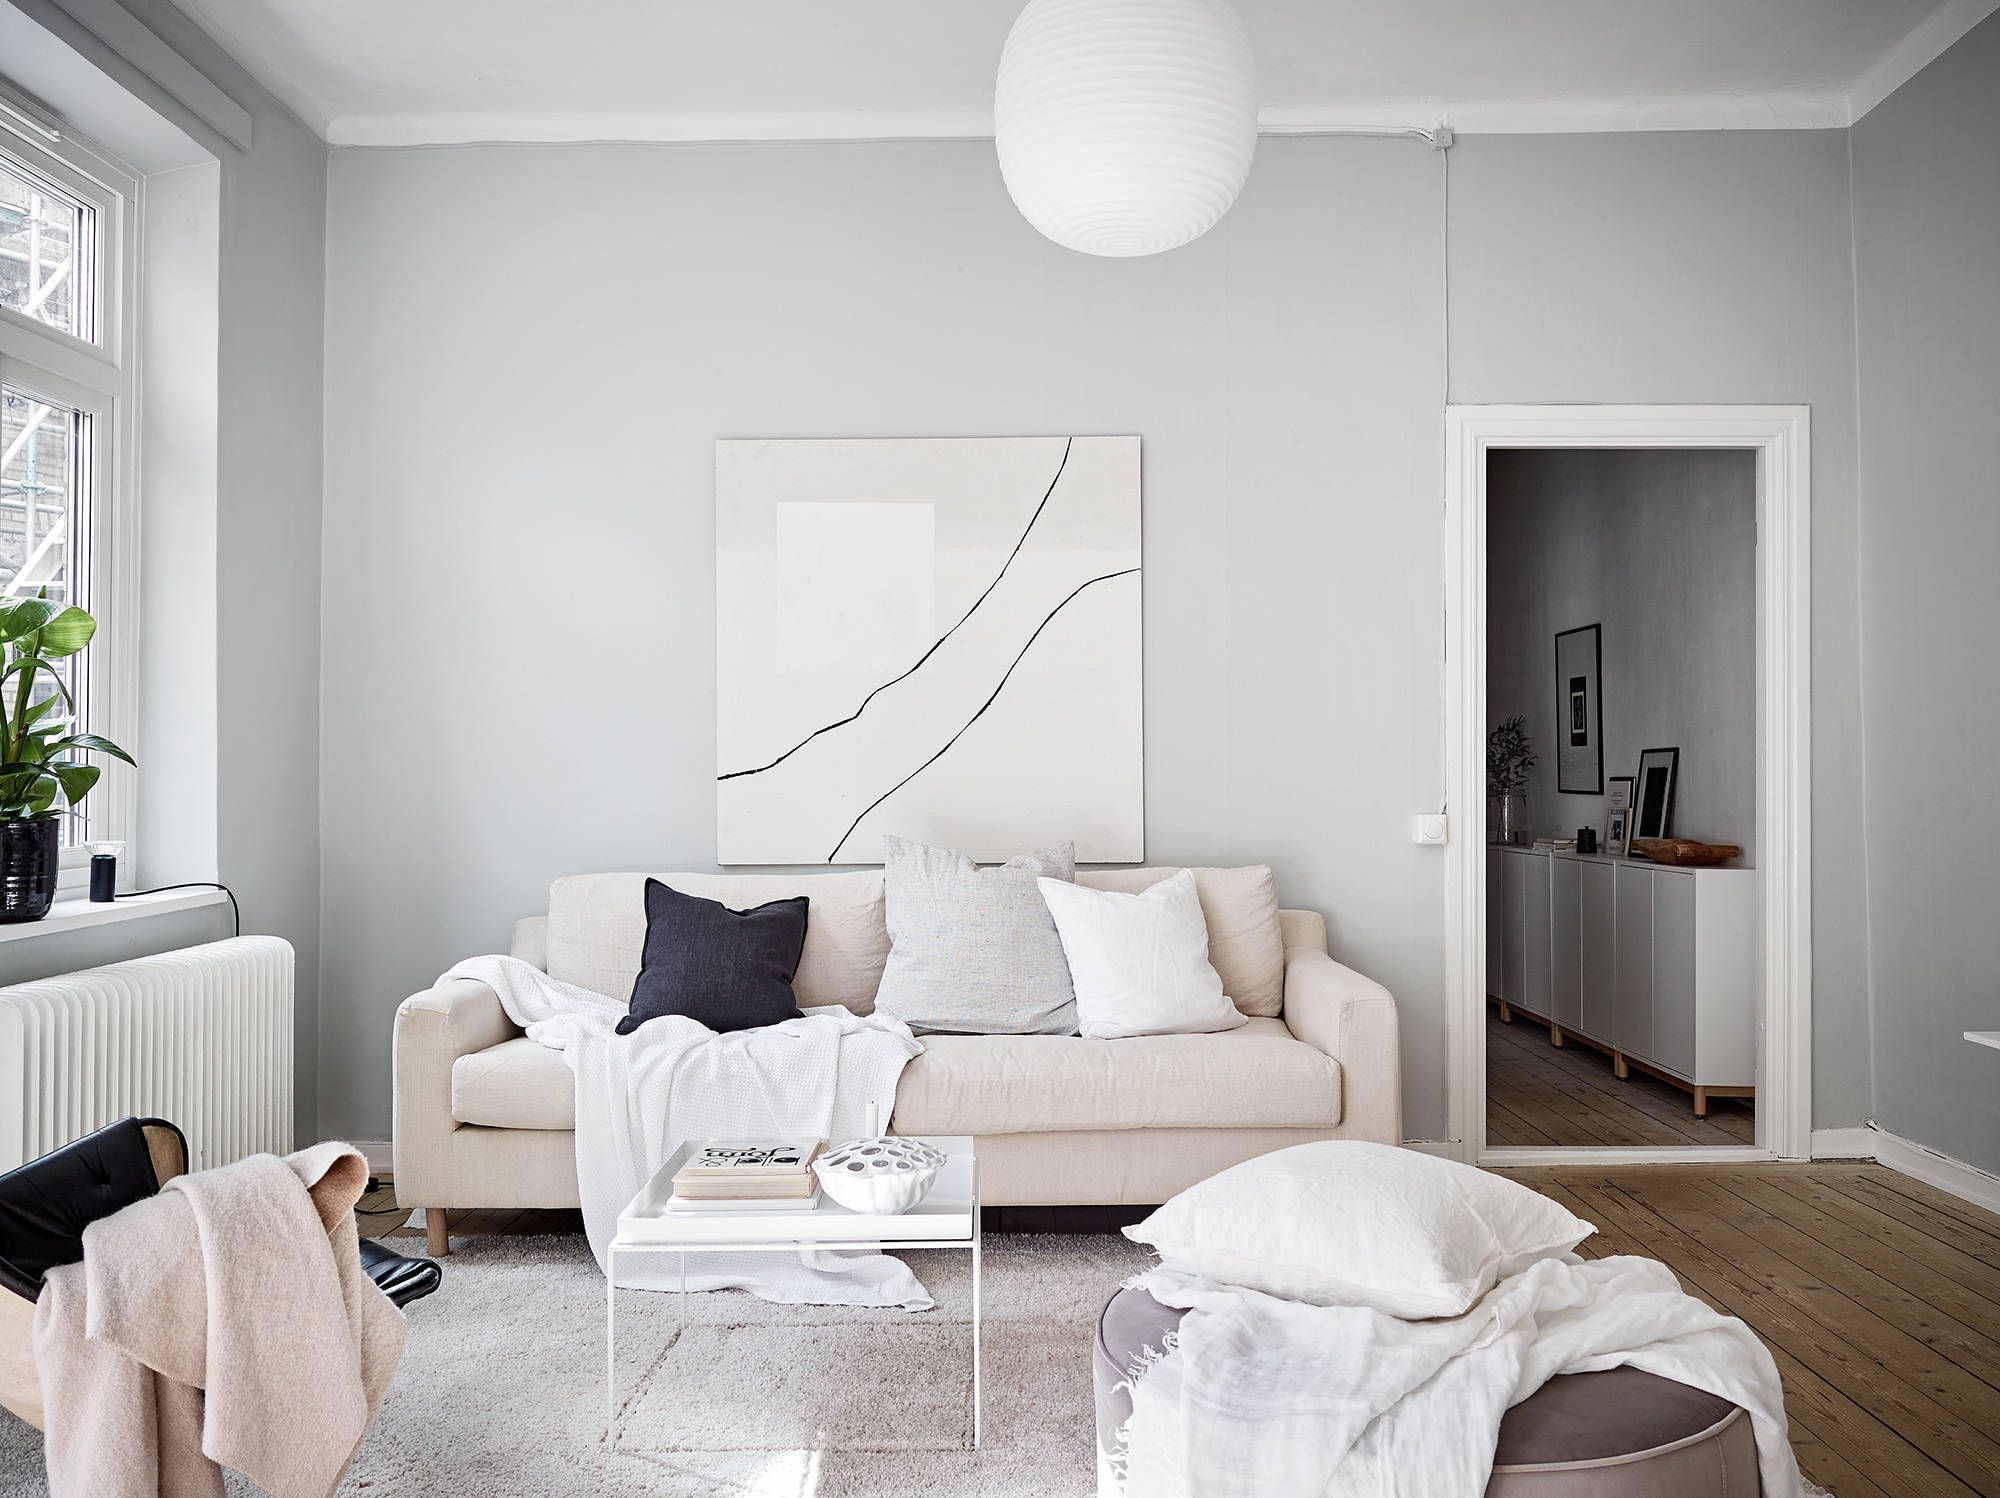 Sofaworks Reading Number Rattan Sofas Outdoor A Home In Beige And Grey Ideas Light Walls Used Separately But I Feel Like They Are Even Better When Combined Together This Cozy Inviting Apartment The Sofa Works